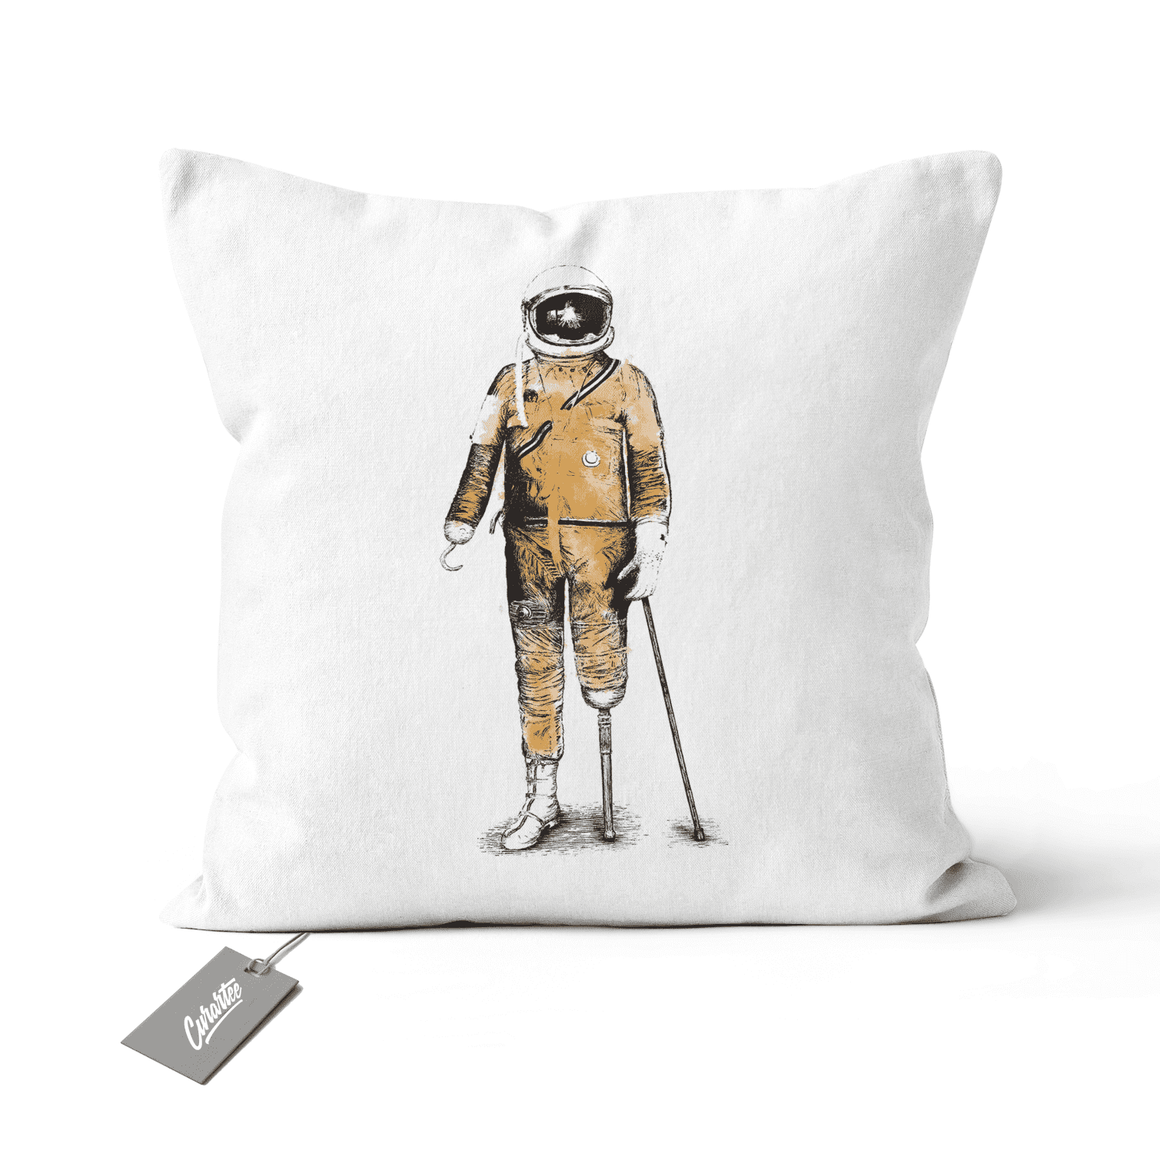 Astropirate Cushion - Premium Artwear Curartee